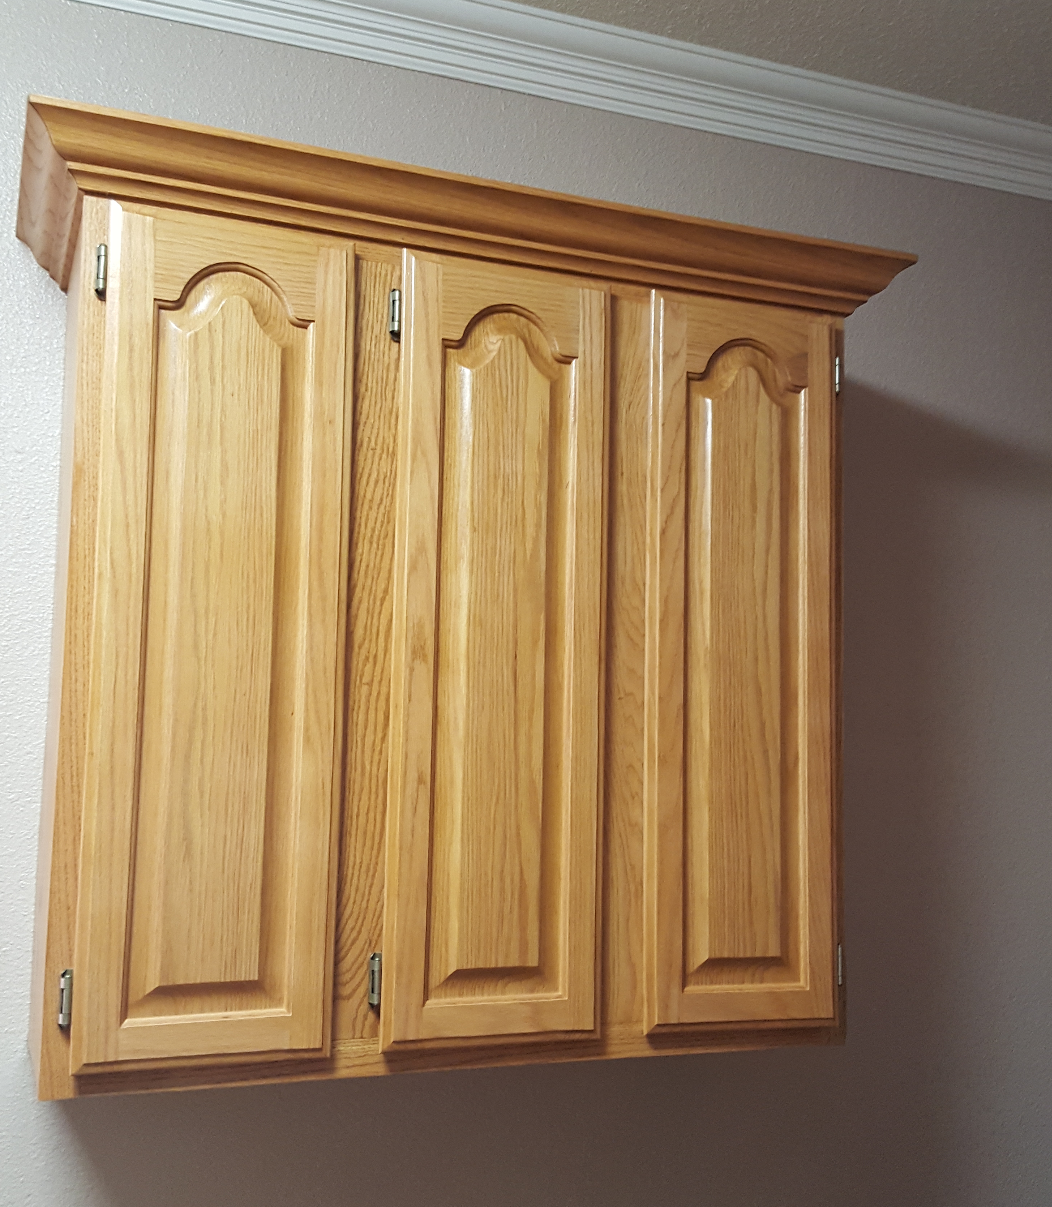 Features Crown Arched Paneled Doors  made of Golden Oak Stained Hickory Wood.